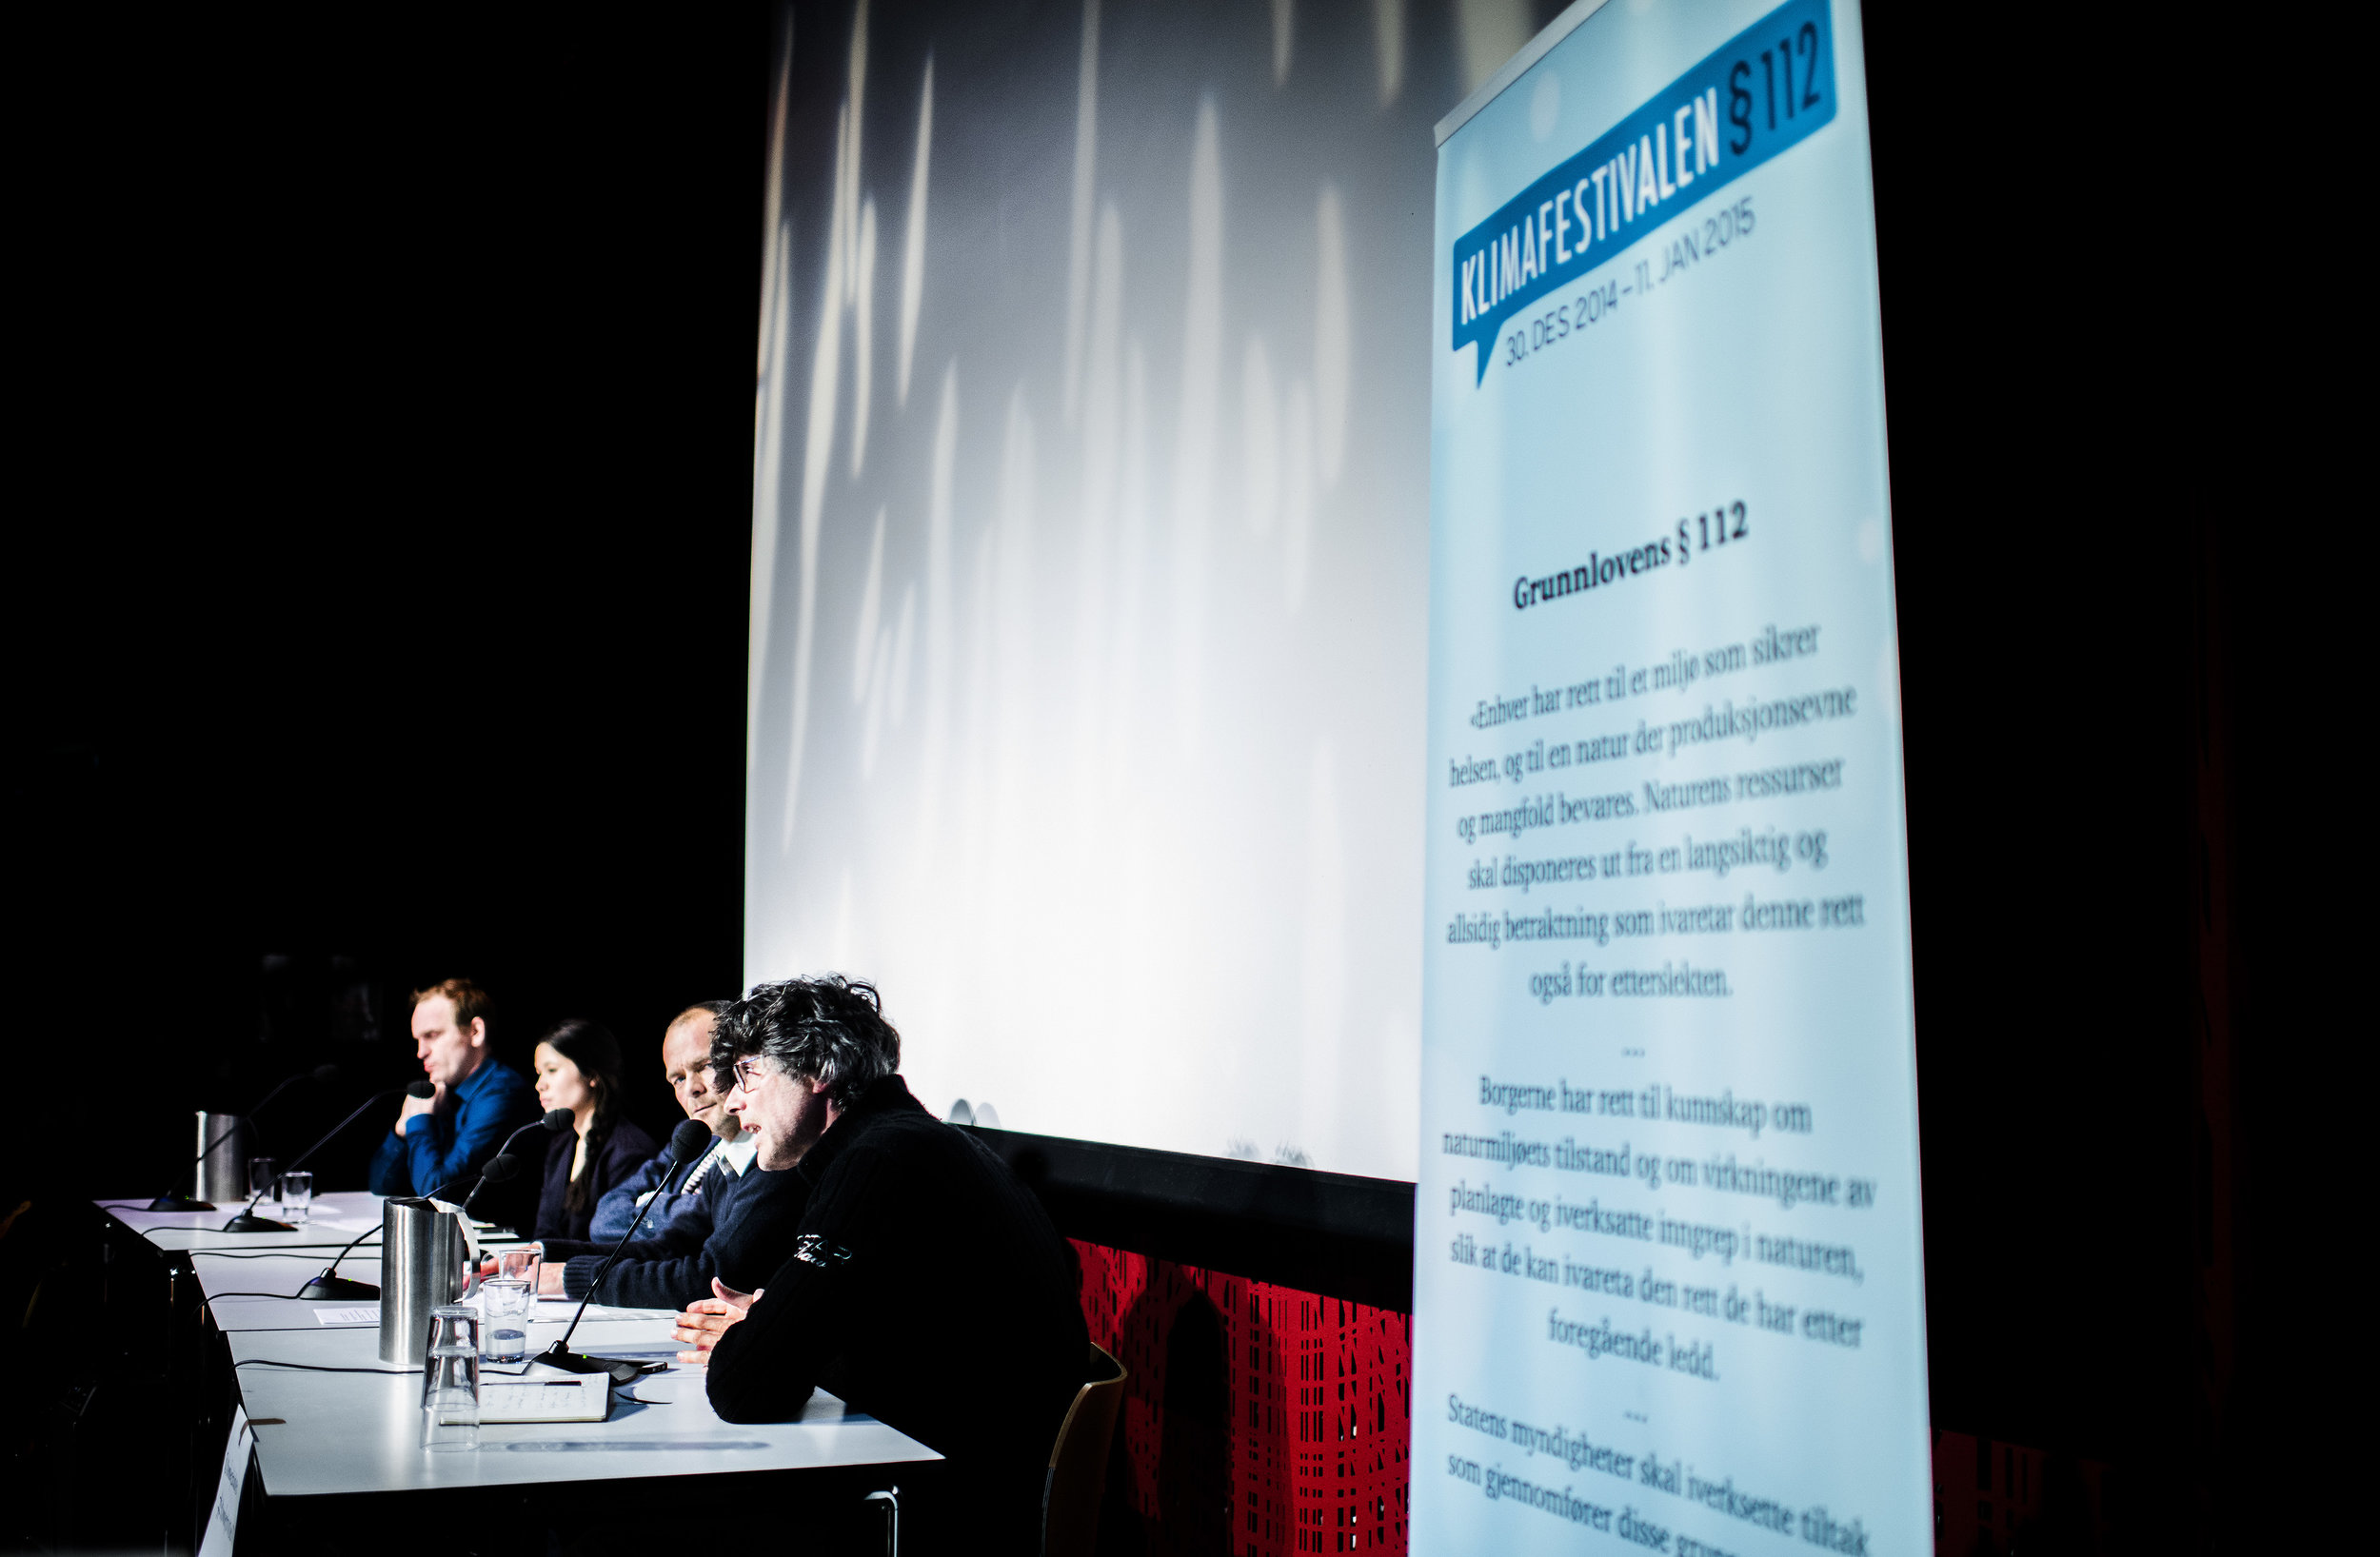 Panel discussion from the festival in 2014. Photo: Andreas Winter